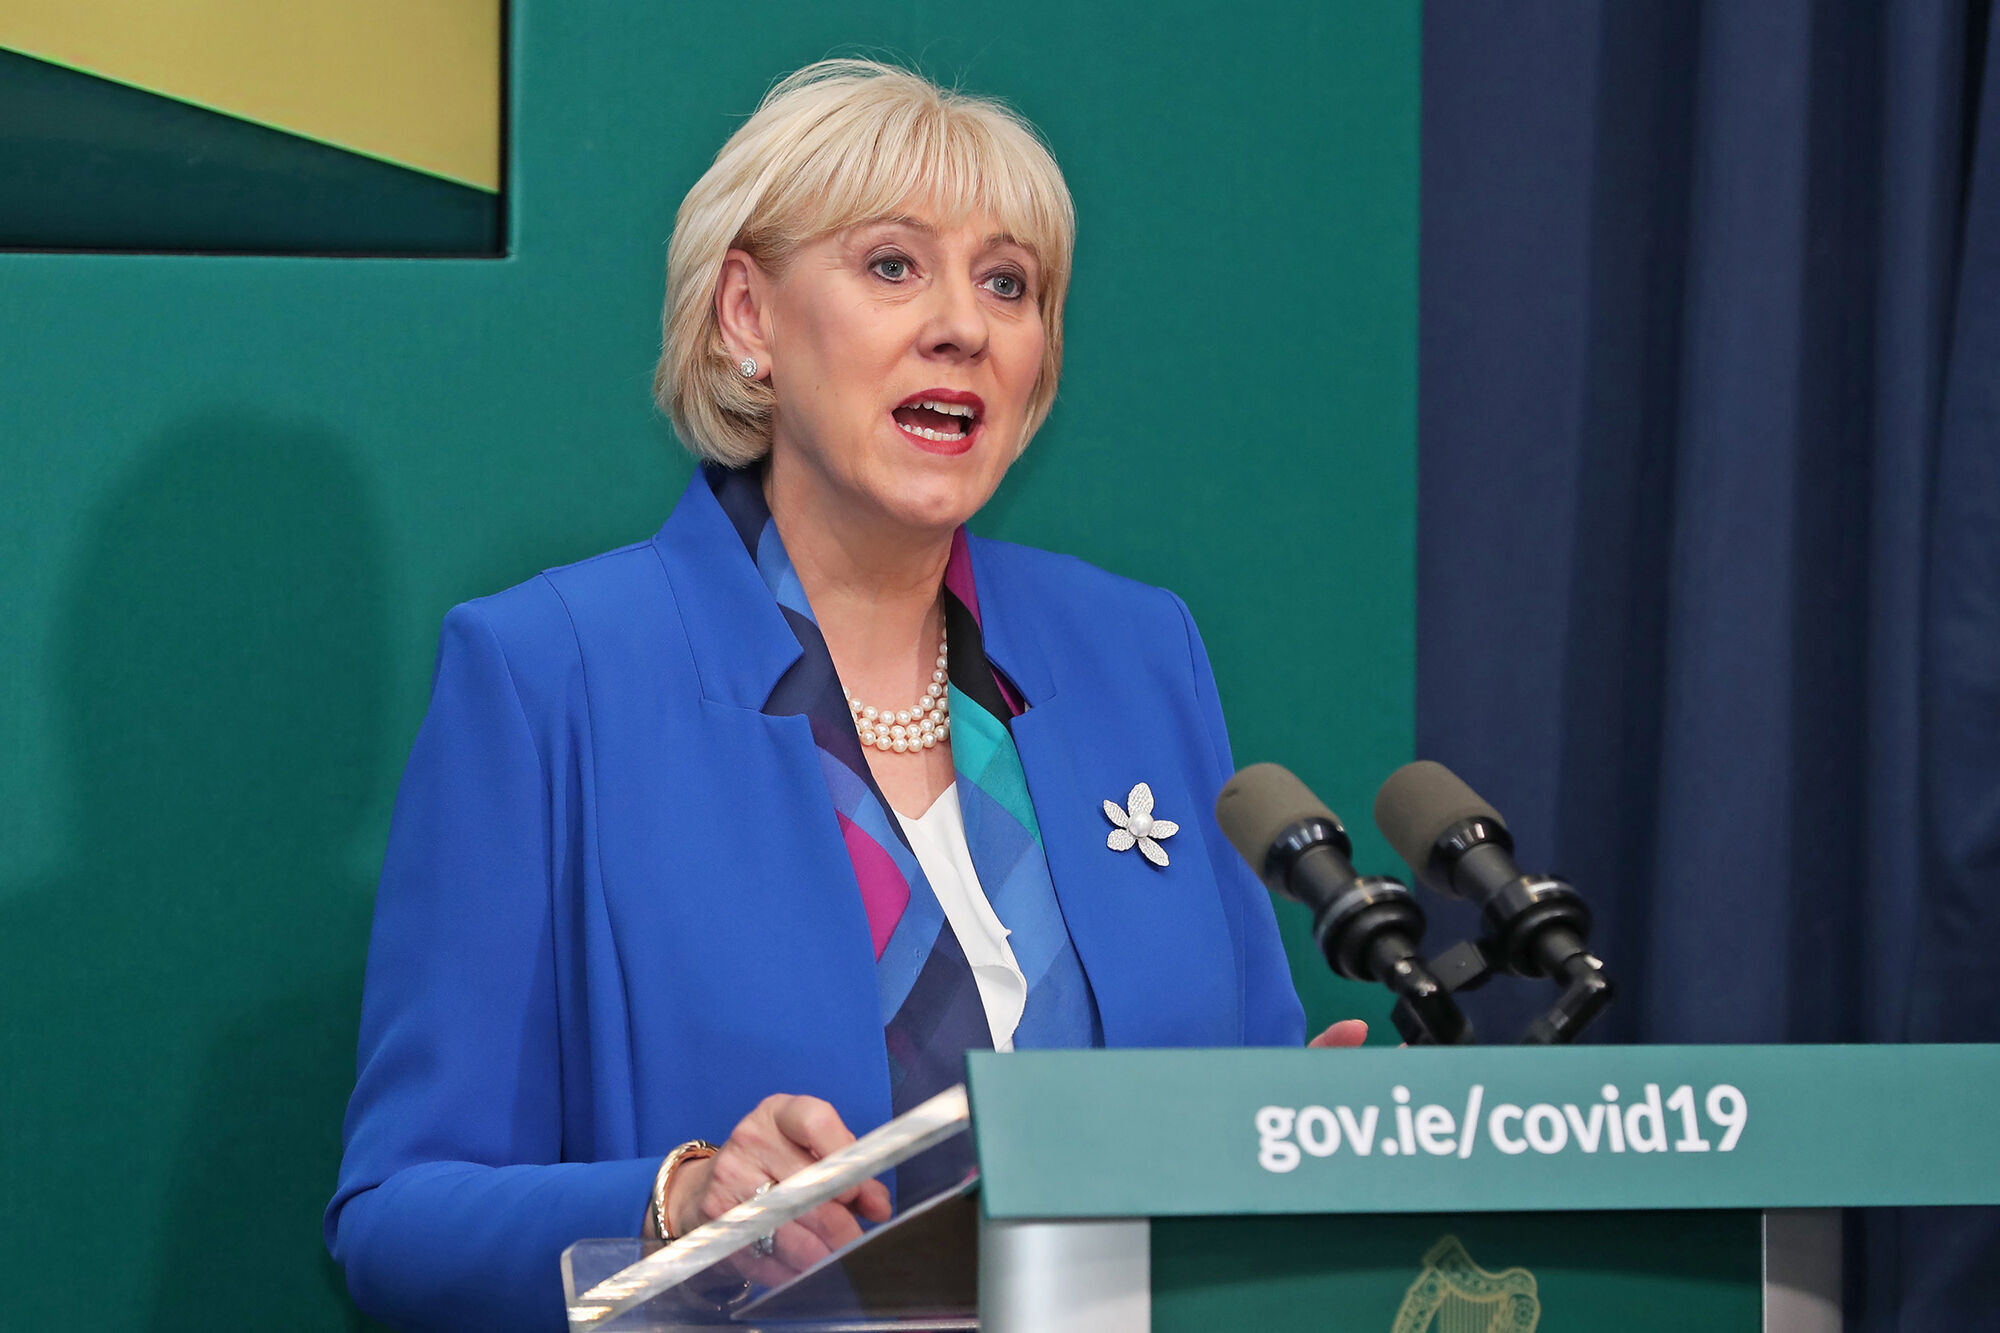 Cork towns to benefit from €2.8m fund to help communities bounce back from Covid crisis